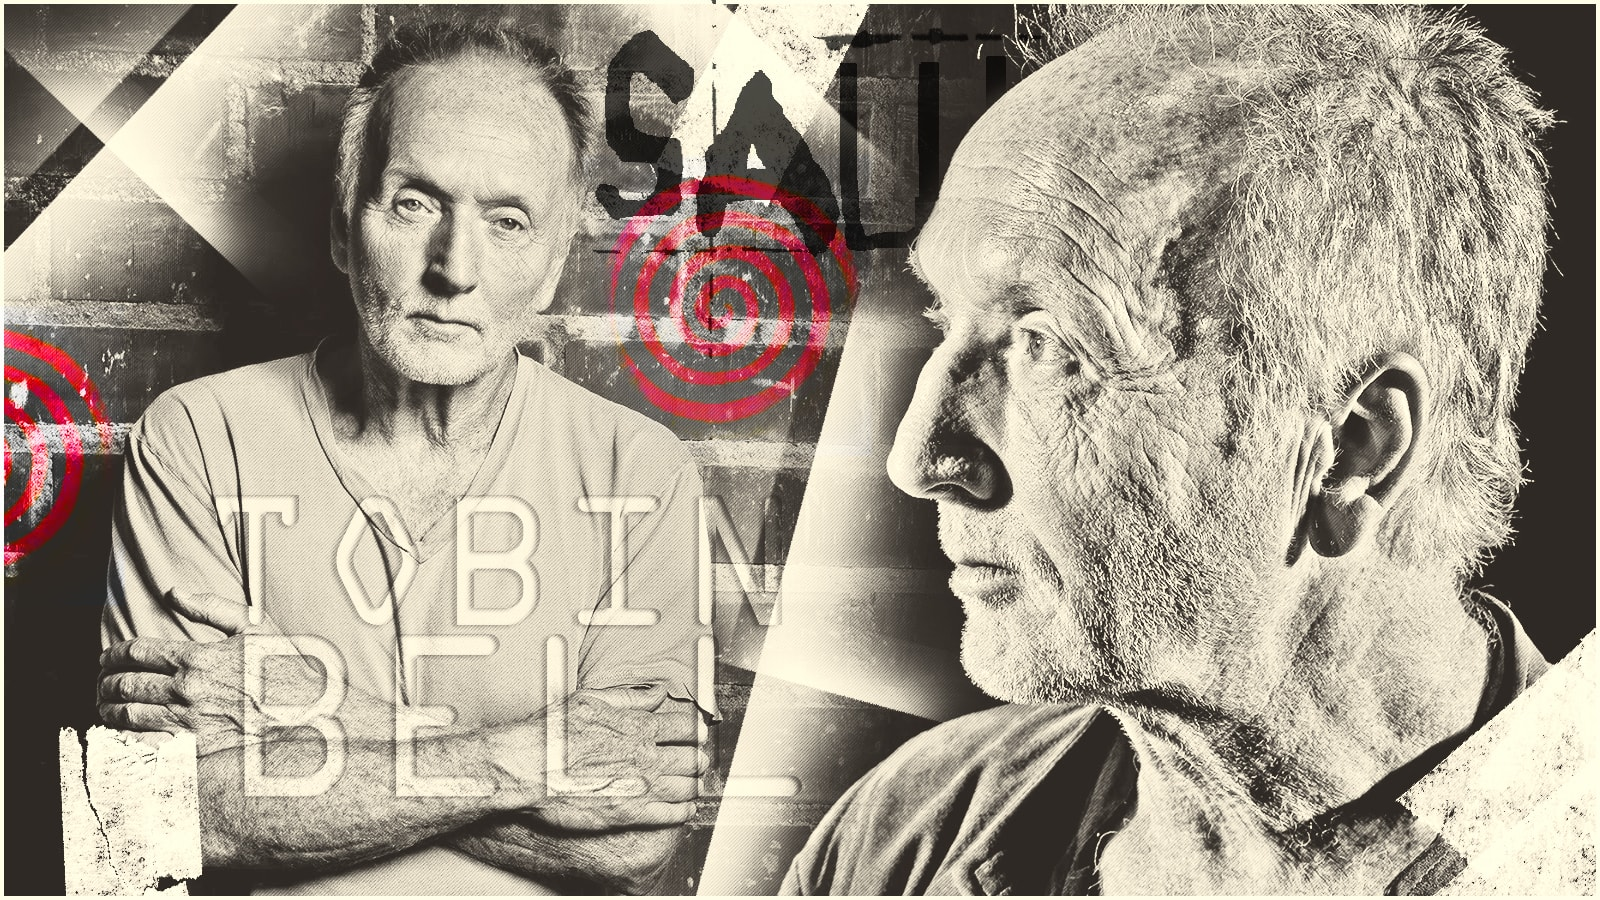 Tobin Bell Wallpaper